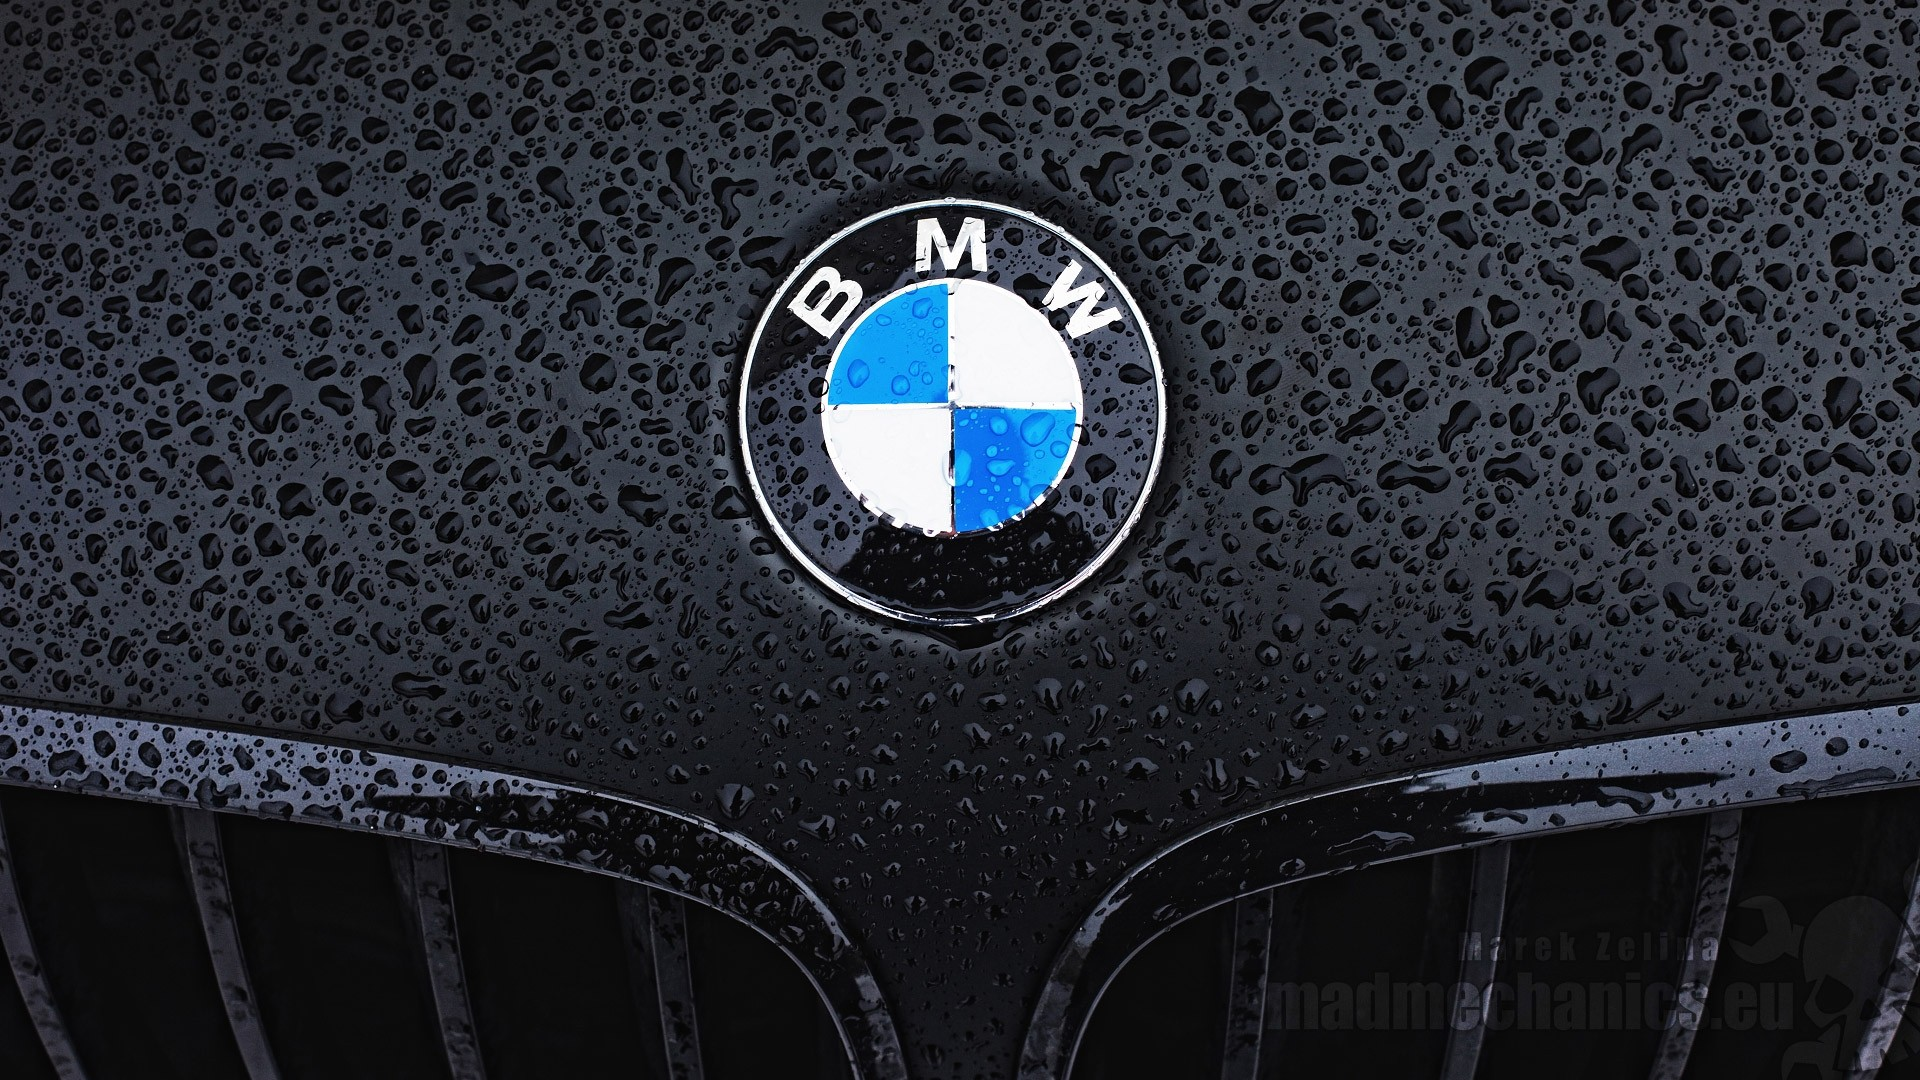 bmw logo wallpapers check out these 72 awesome bmw logo wallpapers for 1920x1080